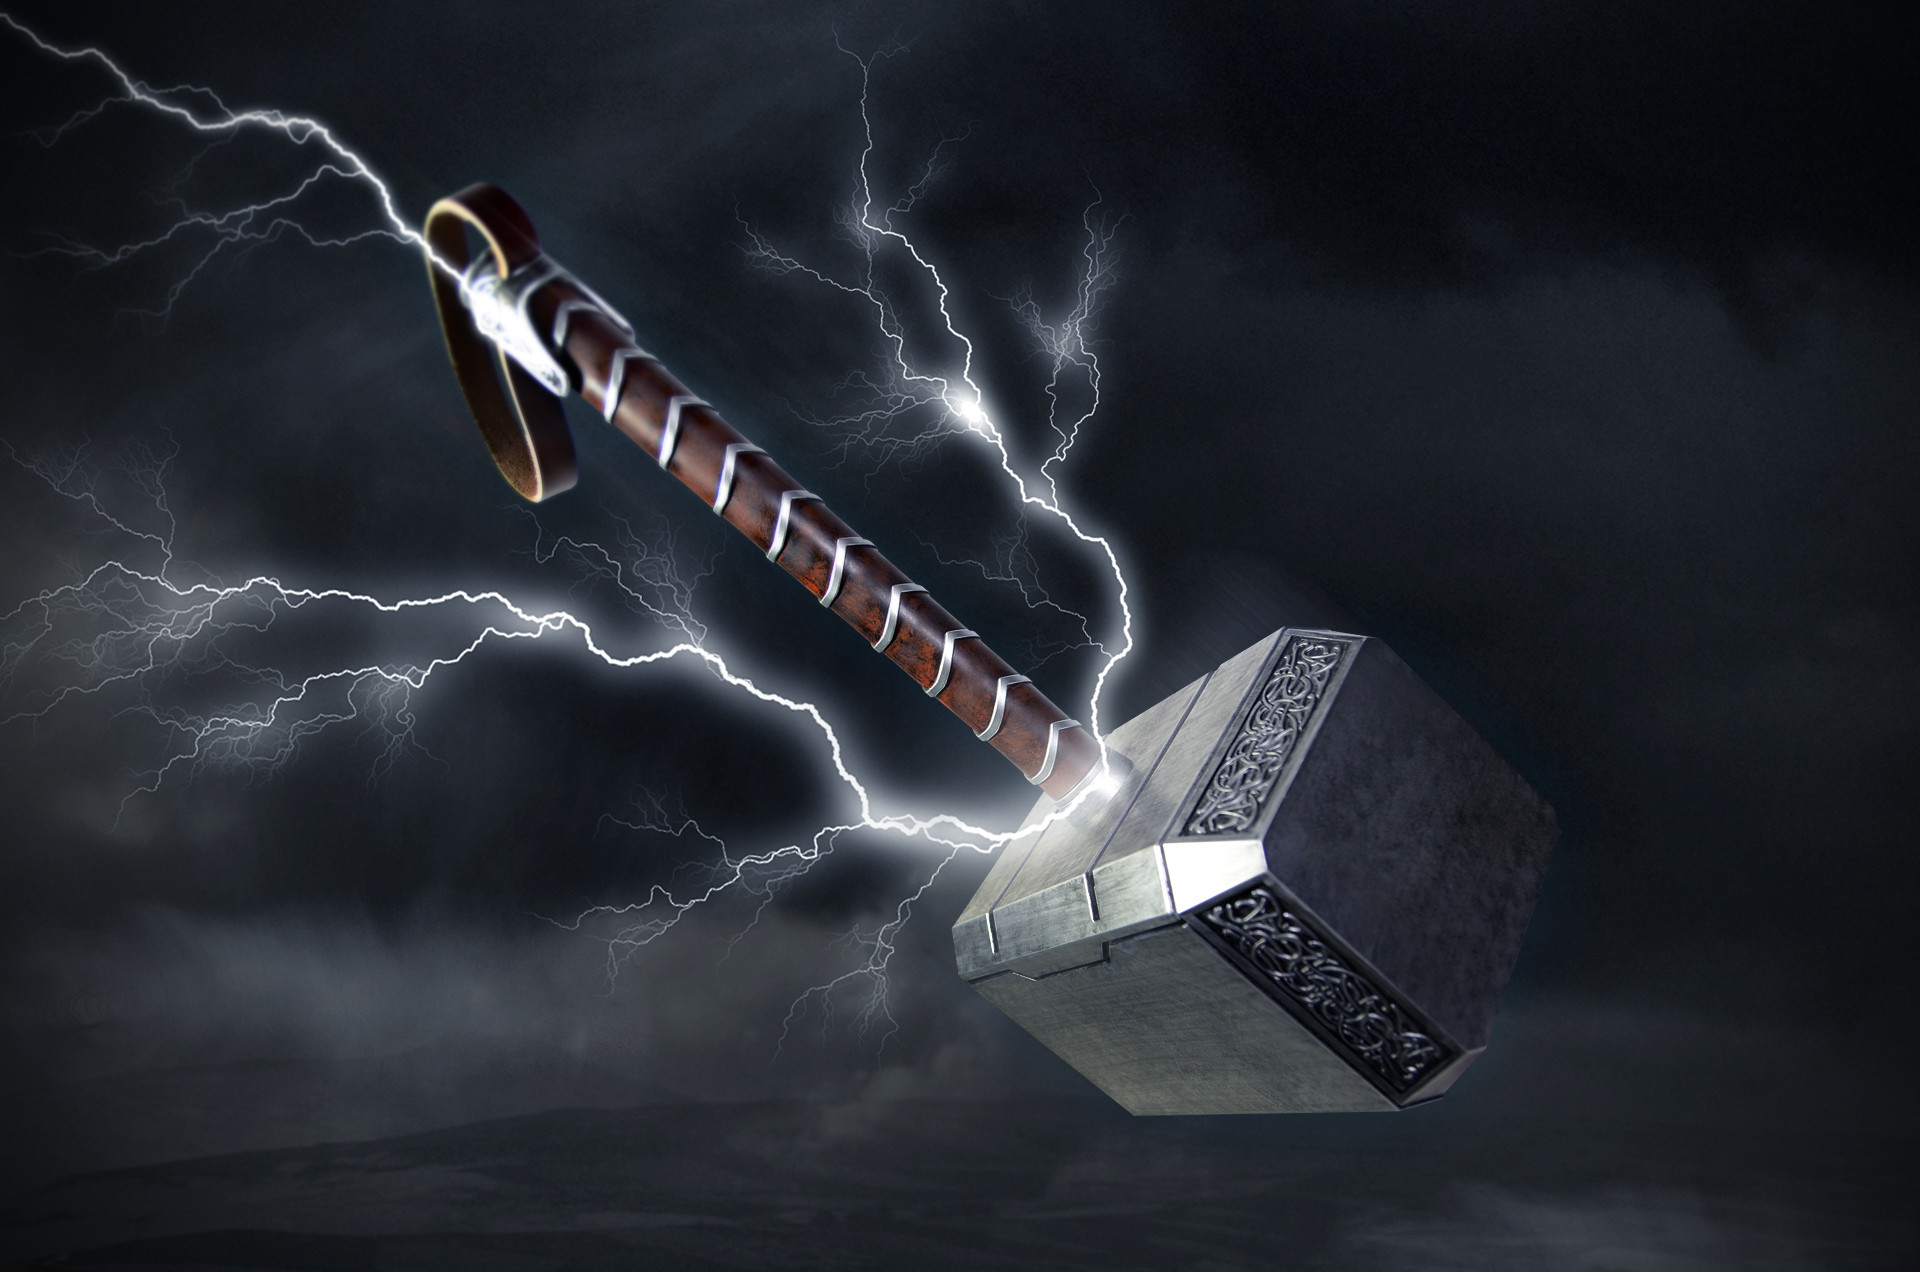 Thor's Hammer New Wallpaper Free HD Wallpaper – Download Thor's Hammer .